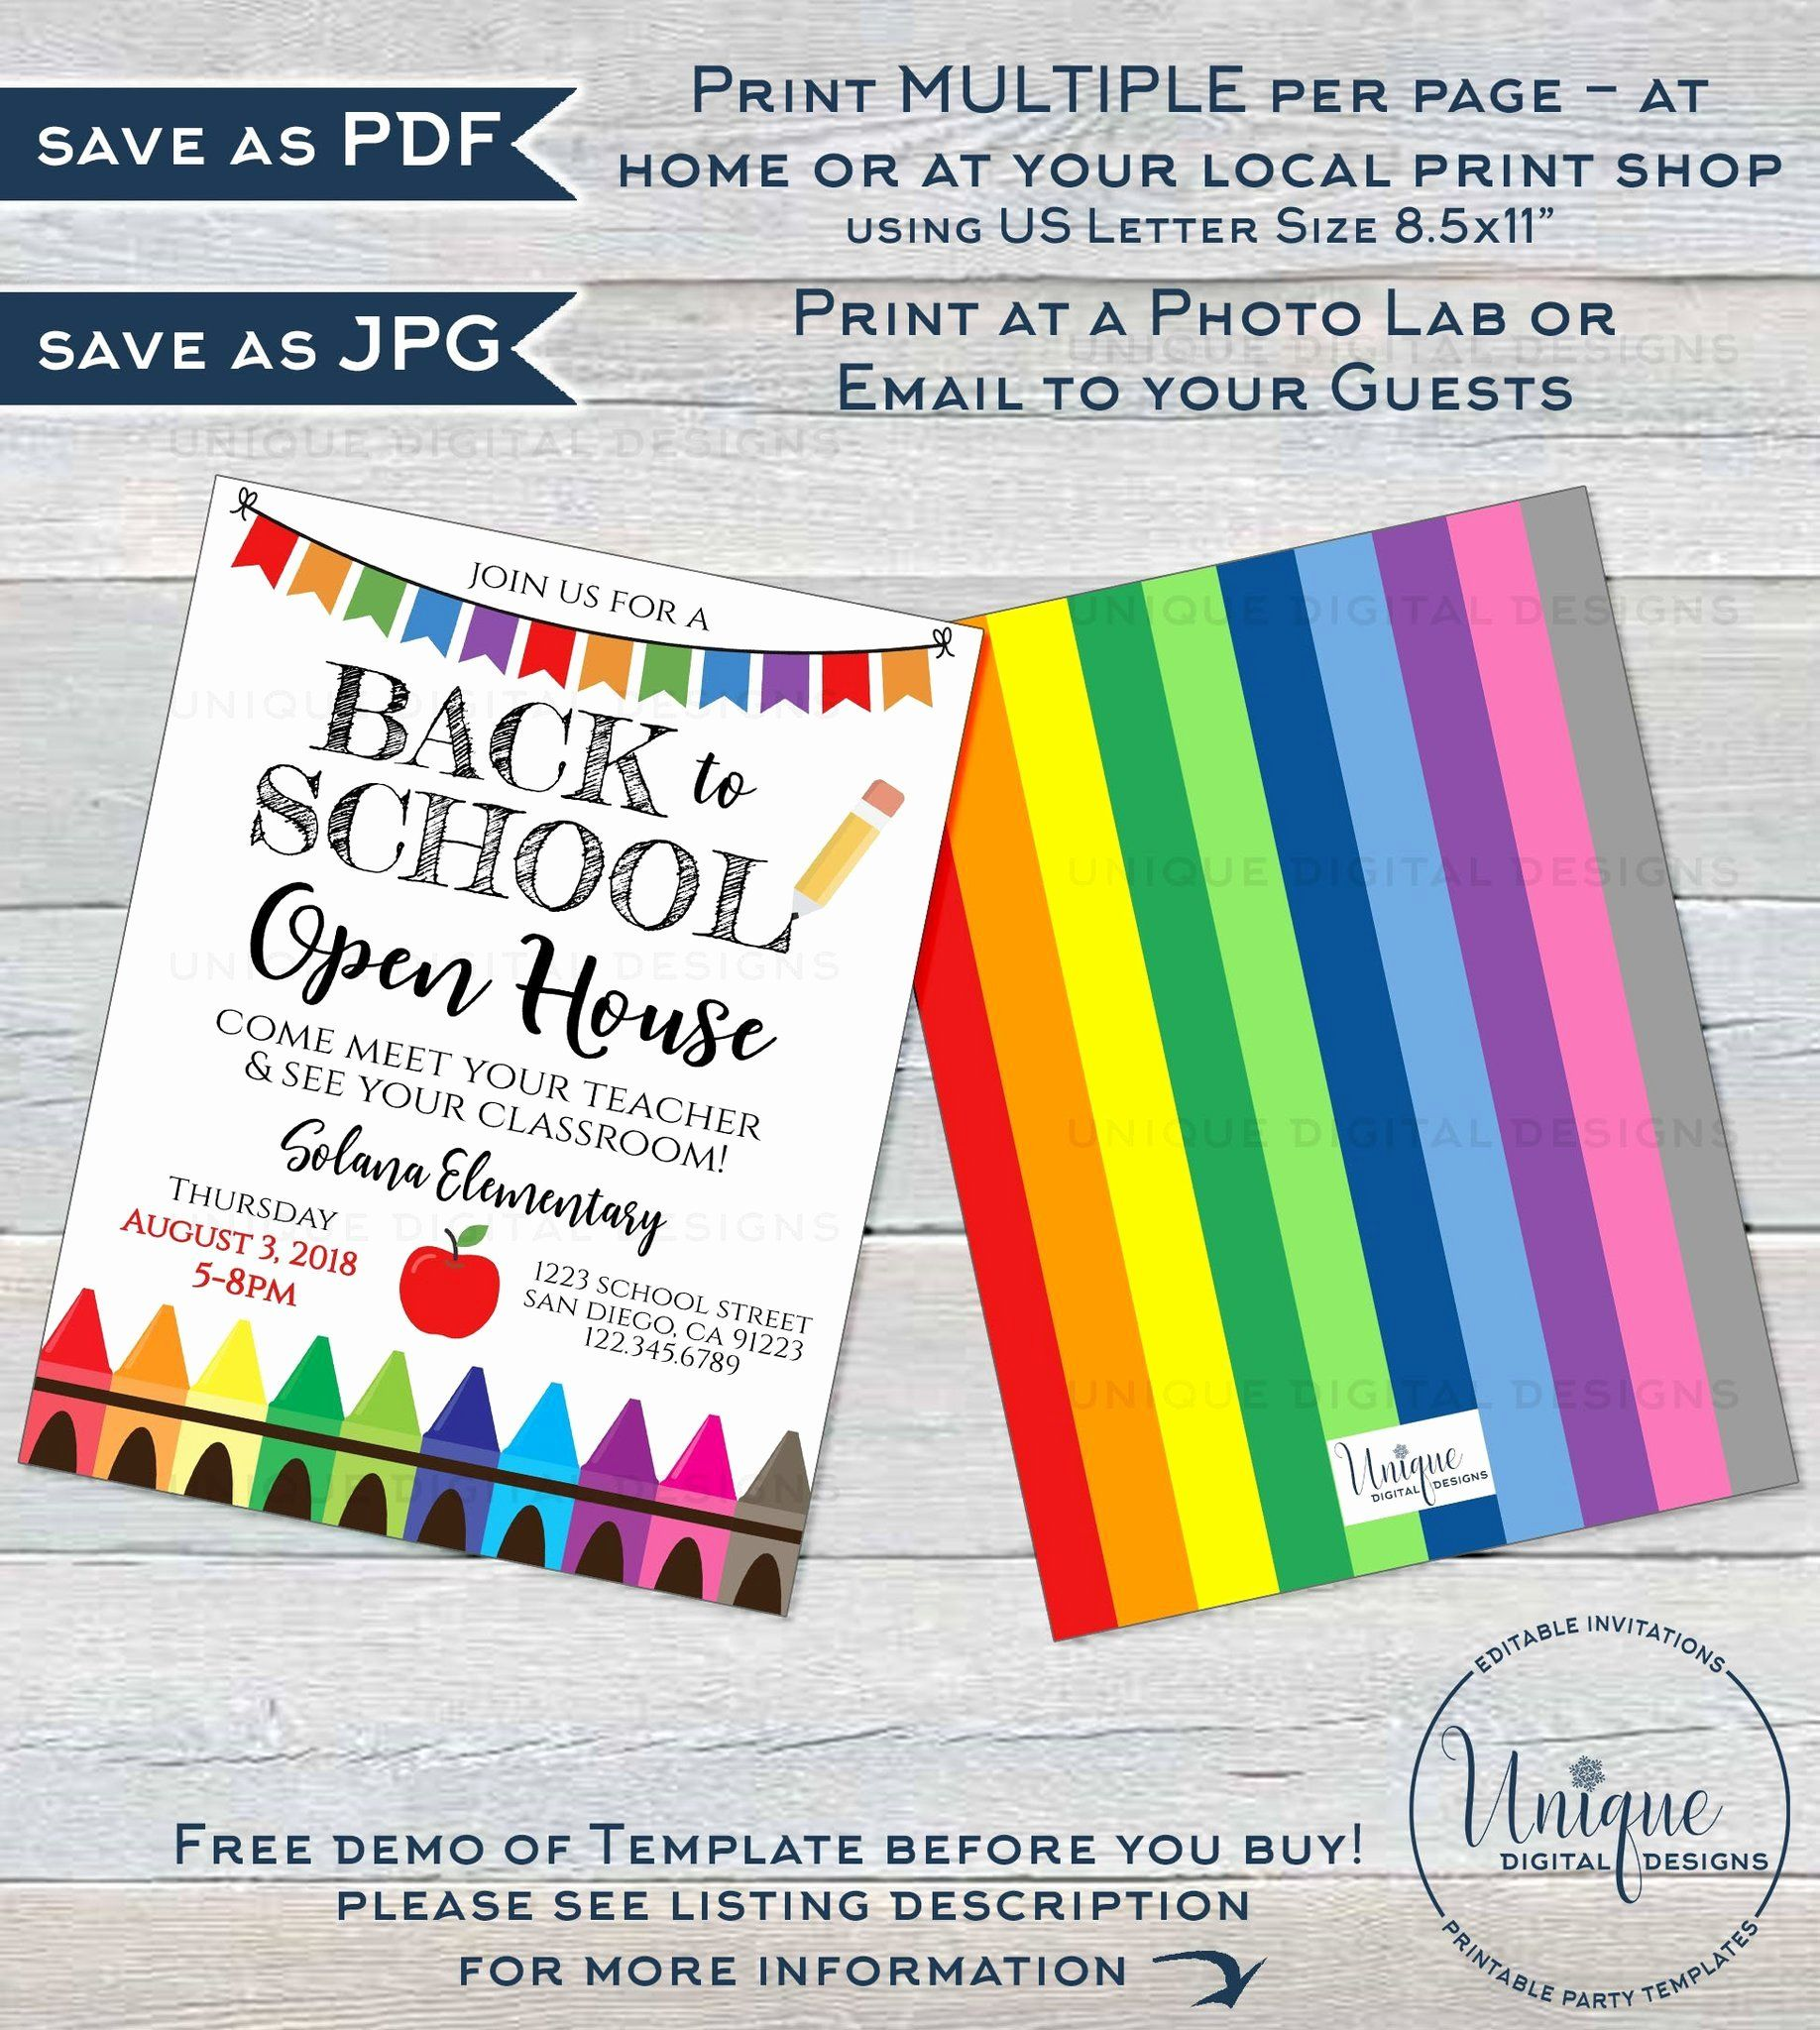 School Open House Invitation Template Luxury Back To School Open House Invitation Meet Your Teacher Open House Invitation School Open House Invitation Template